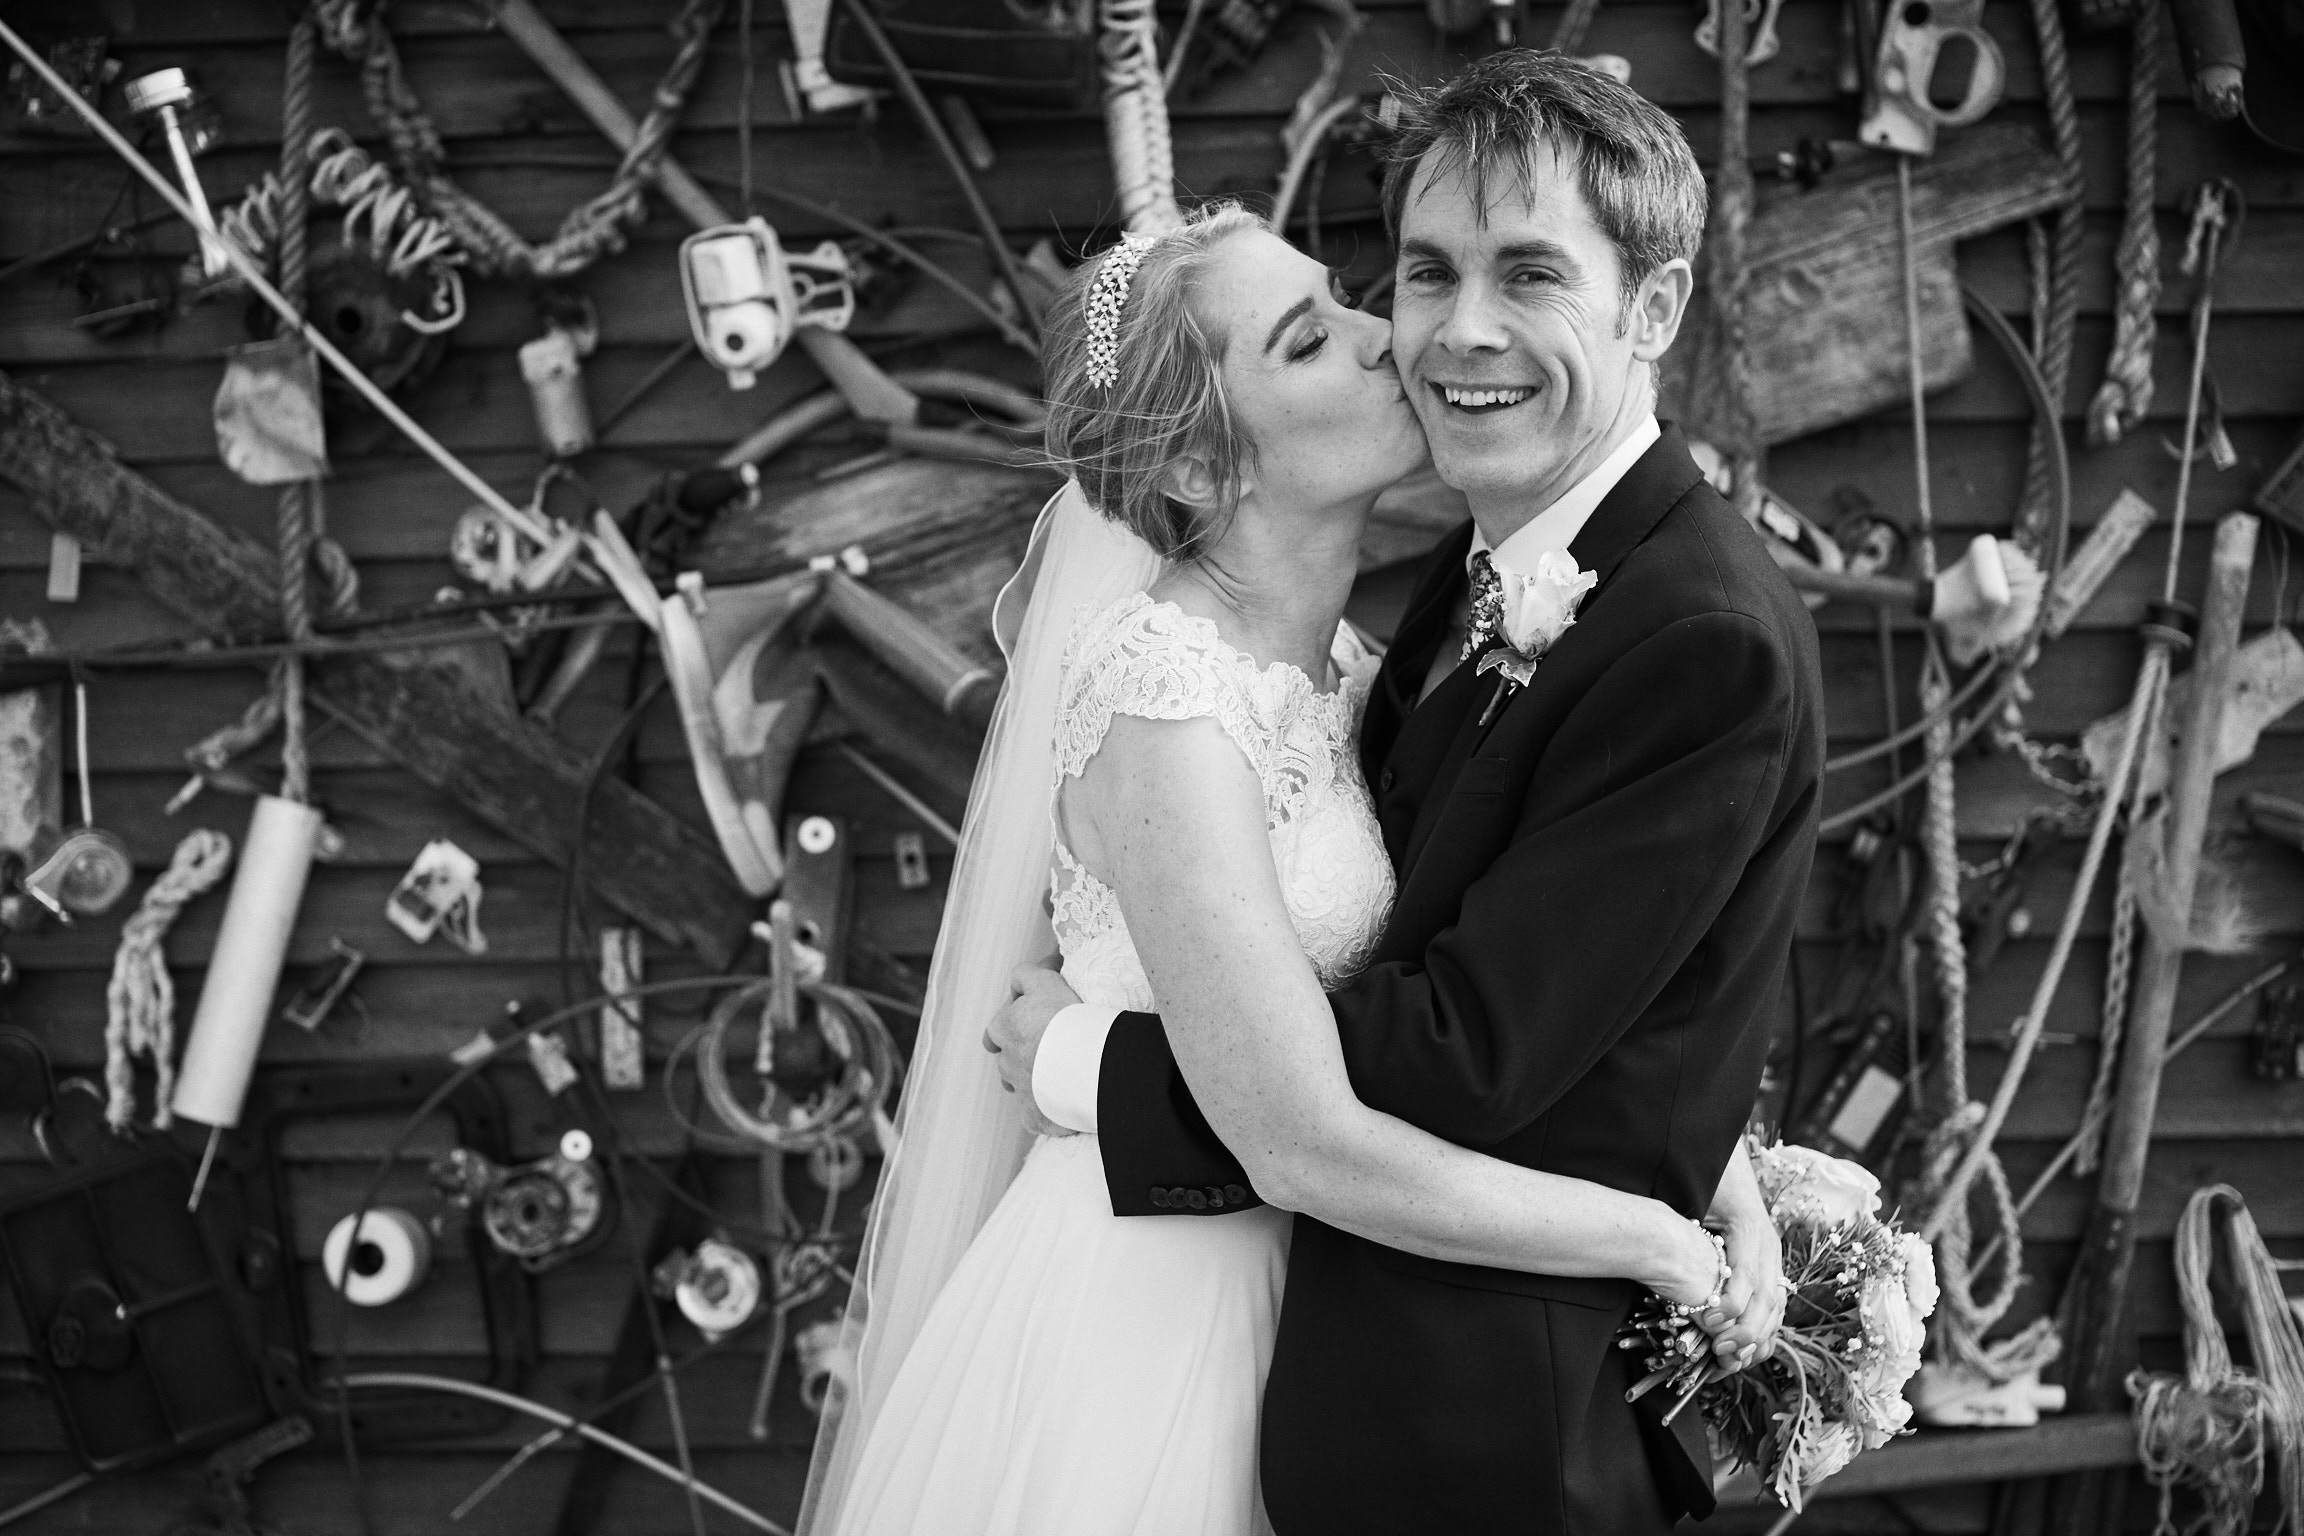 Itchenor Wedding: Cian and Joanne